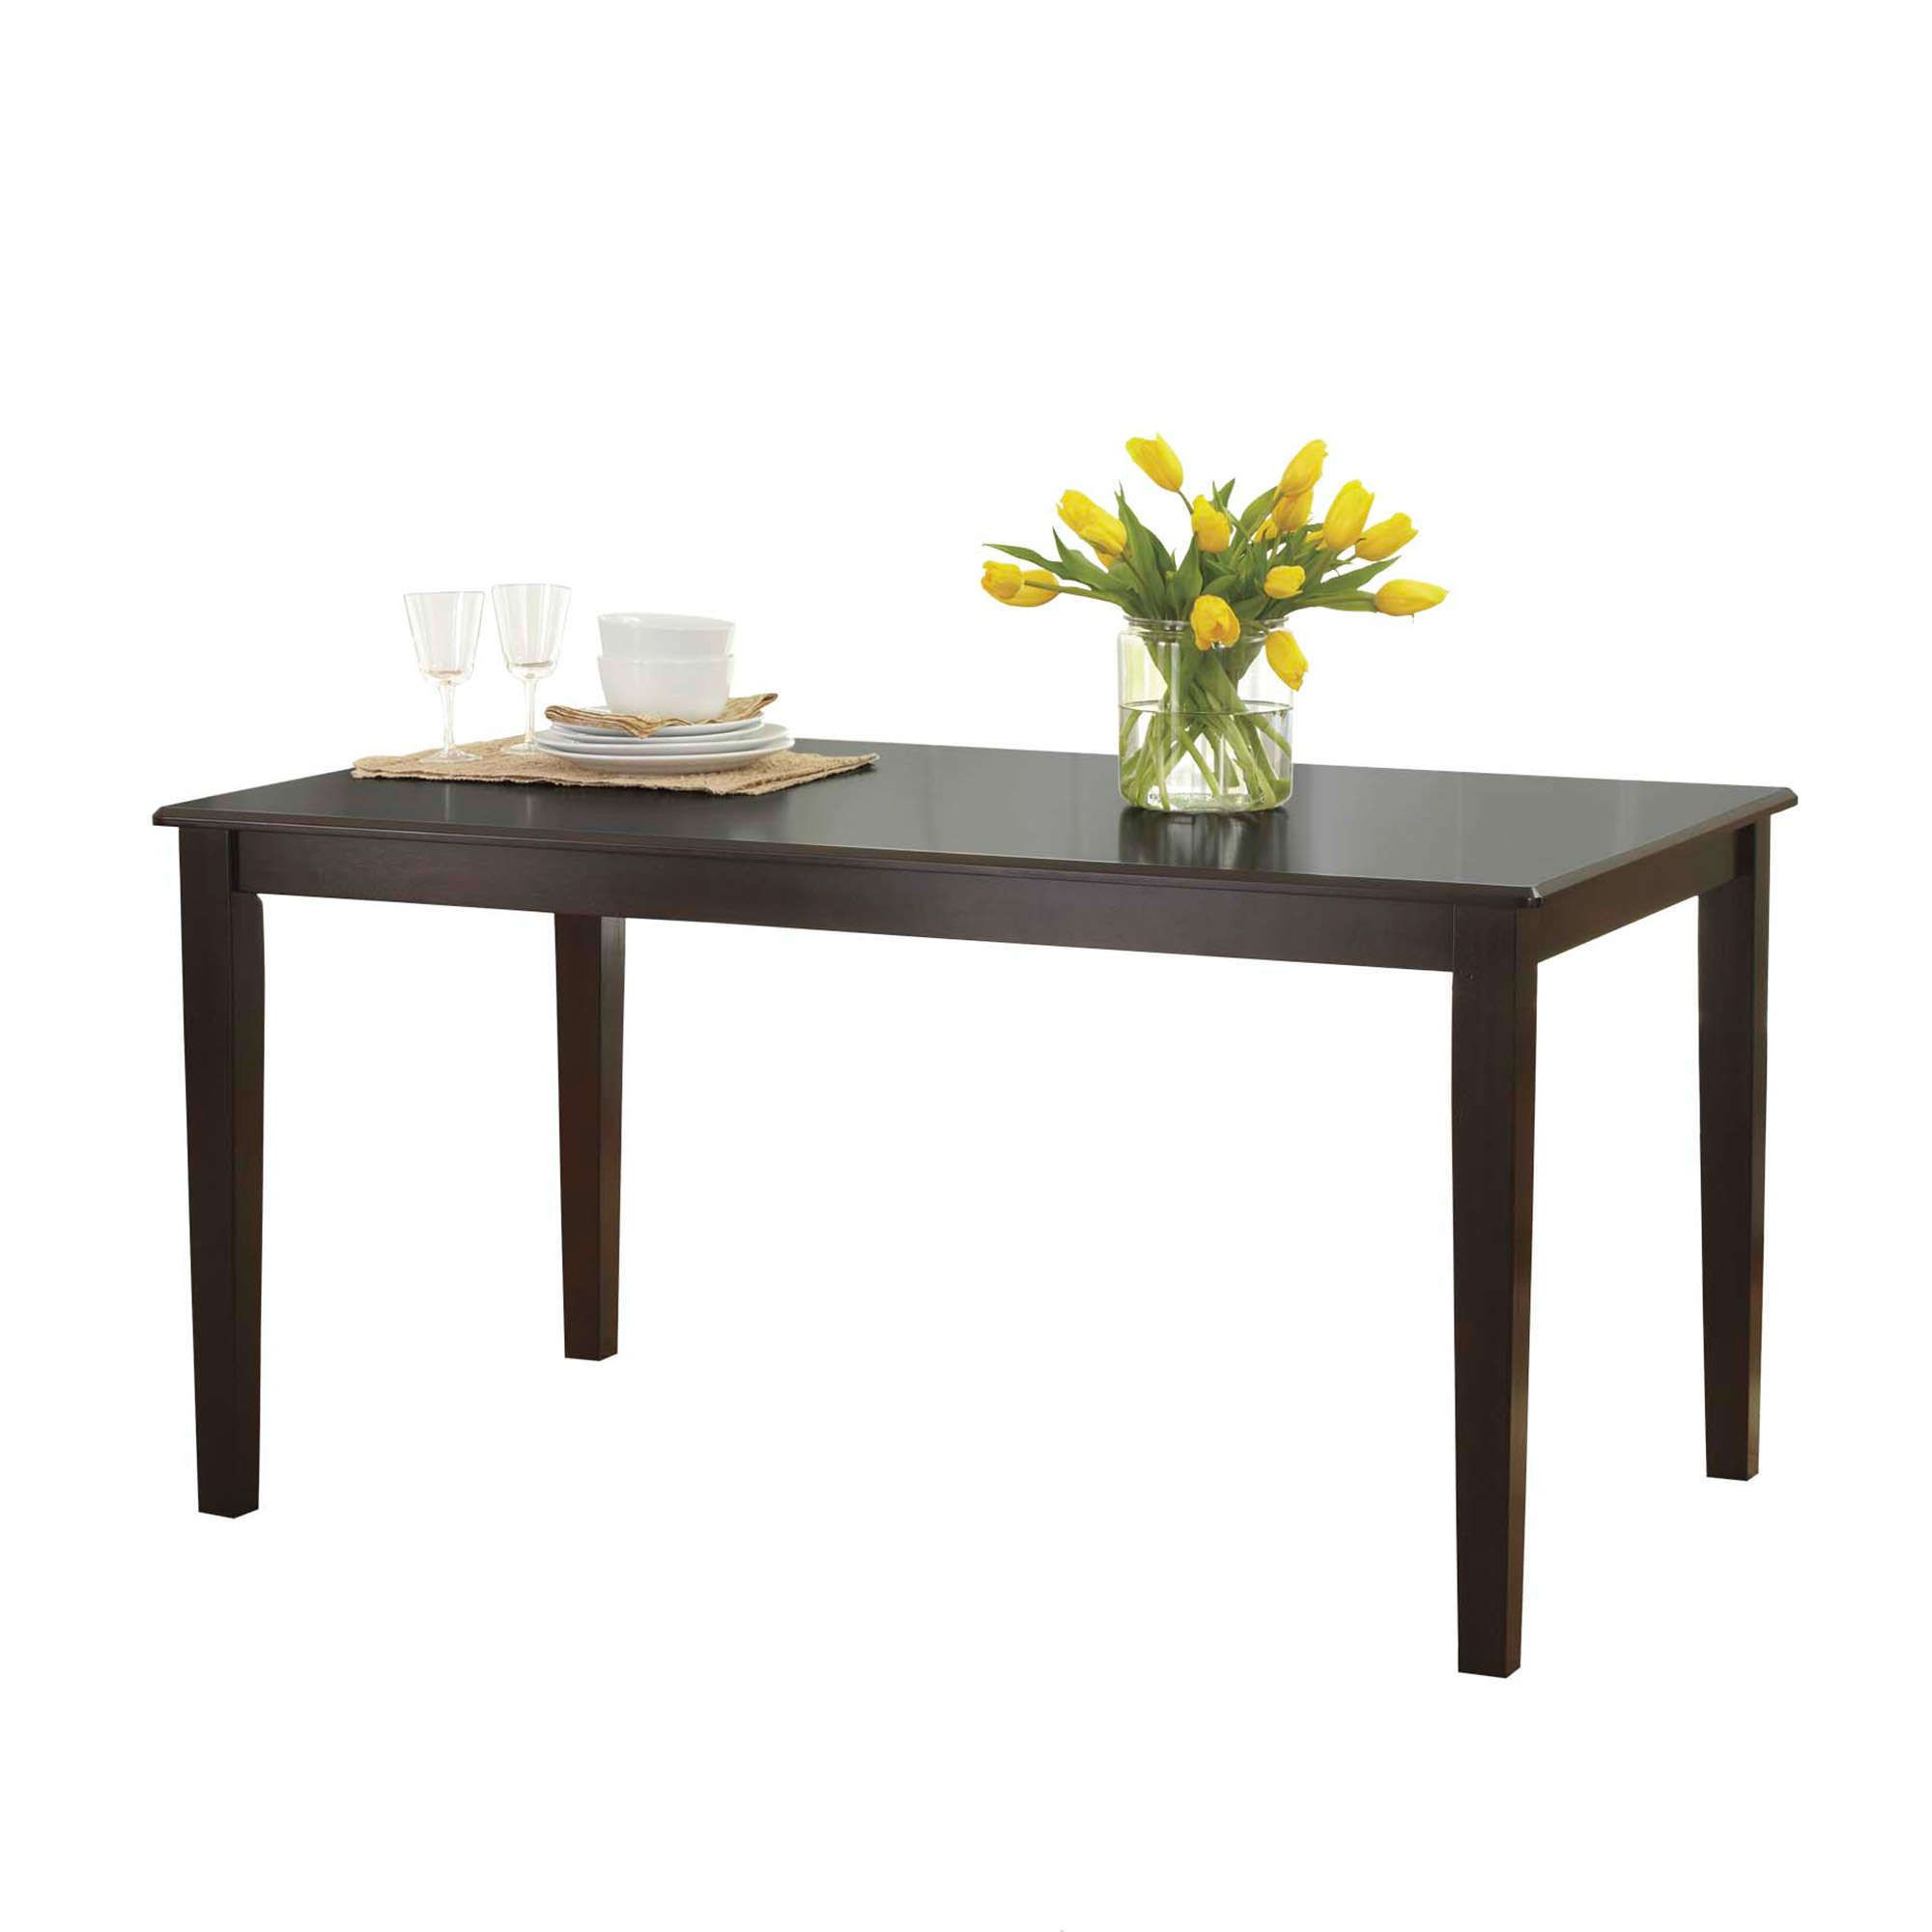 9e0694826817241c695e45651ffd3b0b - Better Homes And Gardens Bankston Dining Table Multiple Finishes